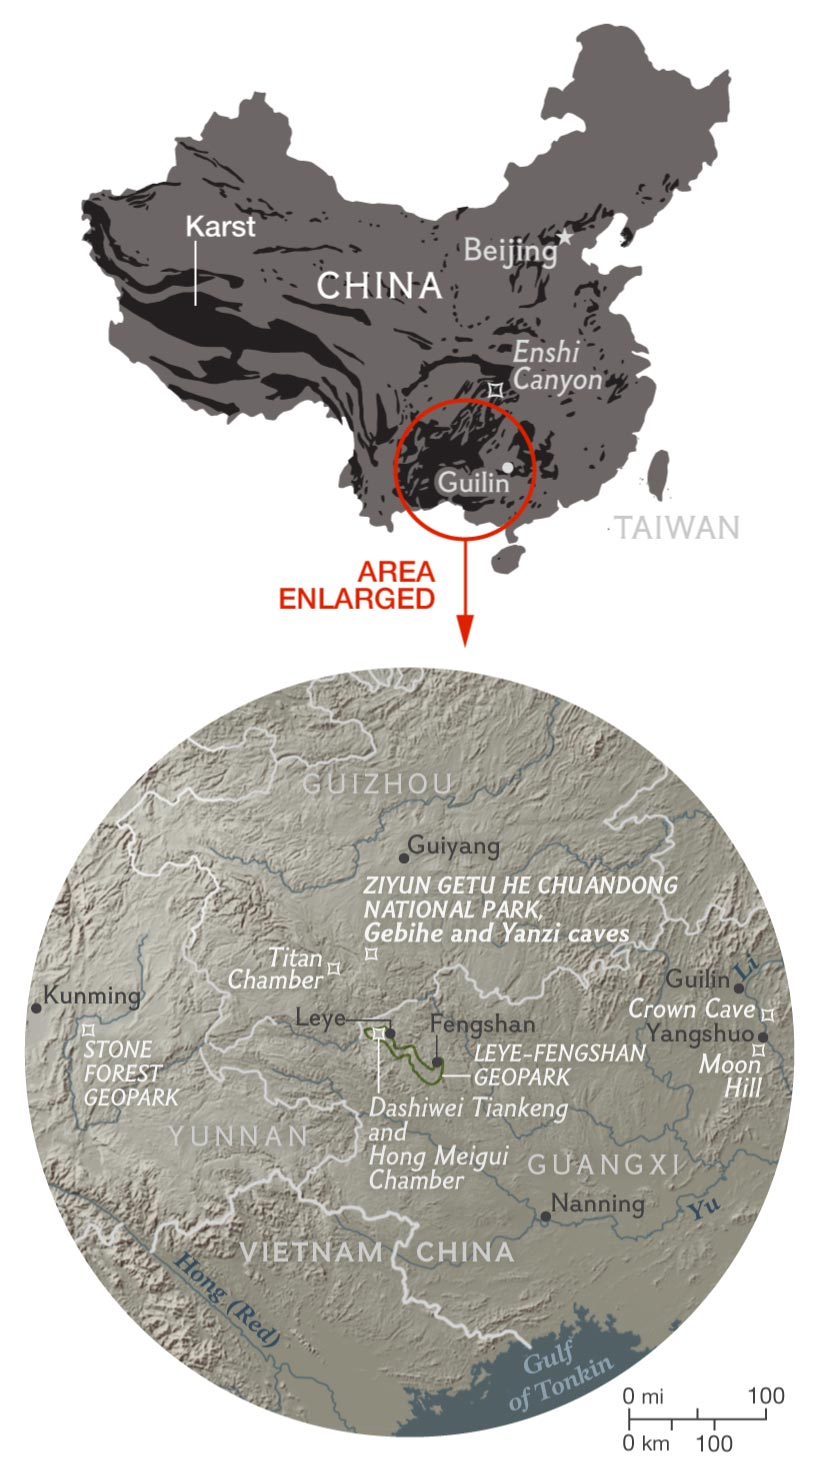 China S Underground Kingdom Southern China Holds The World S Largest Concentration Of The Eroded Topography Called Karst For More Than 600 Million Years